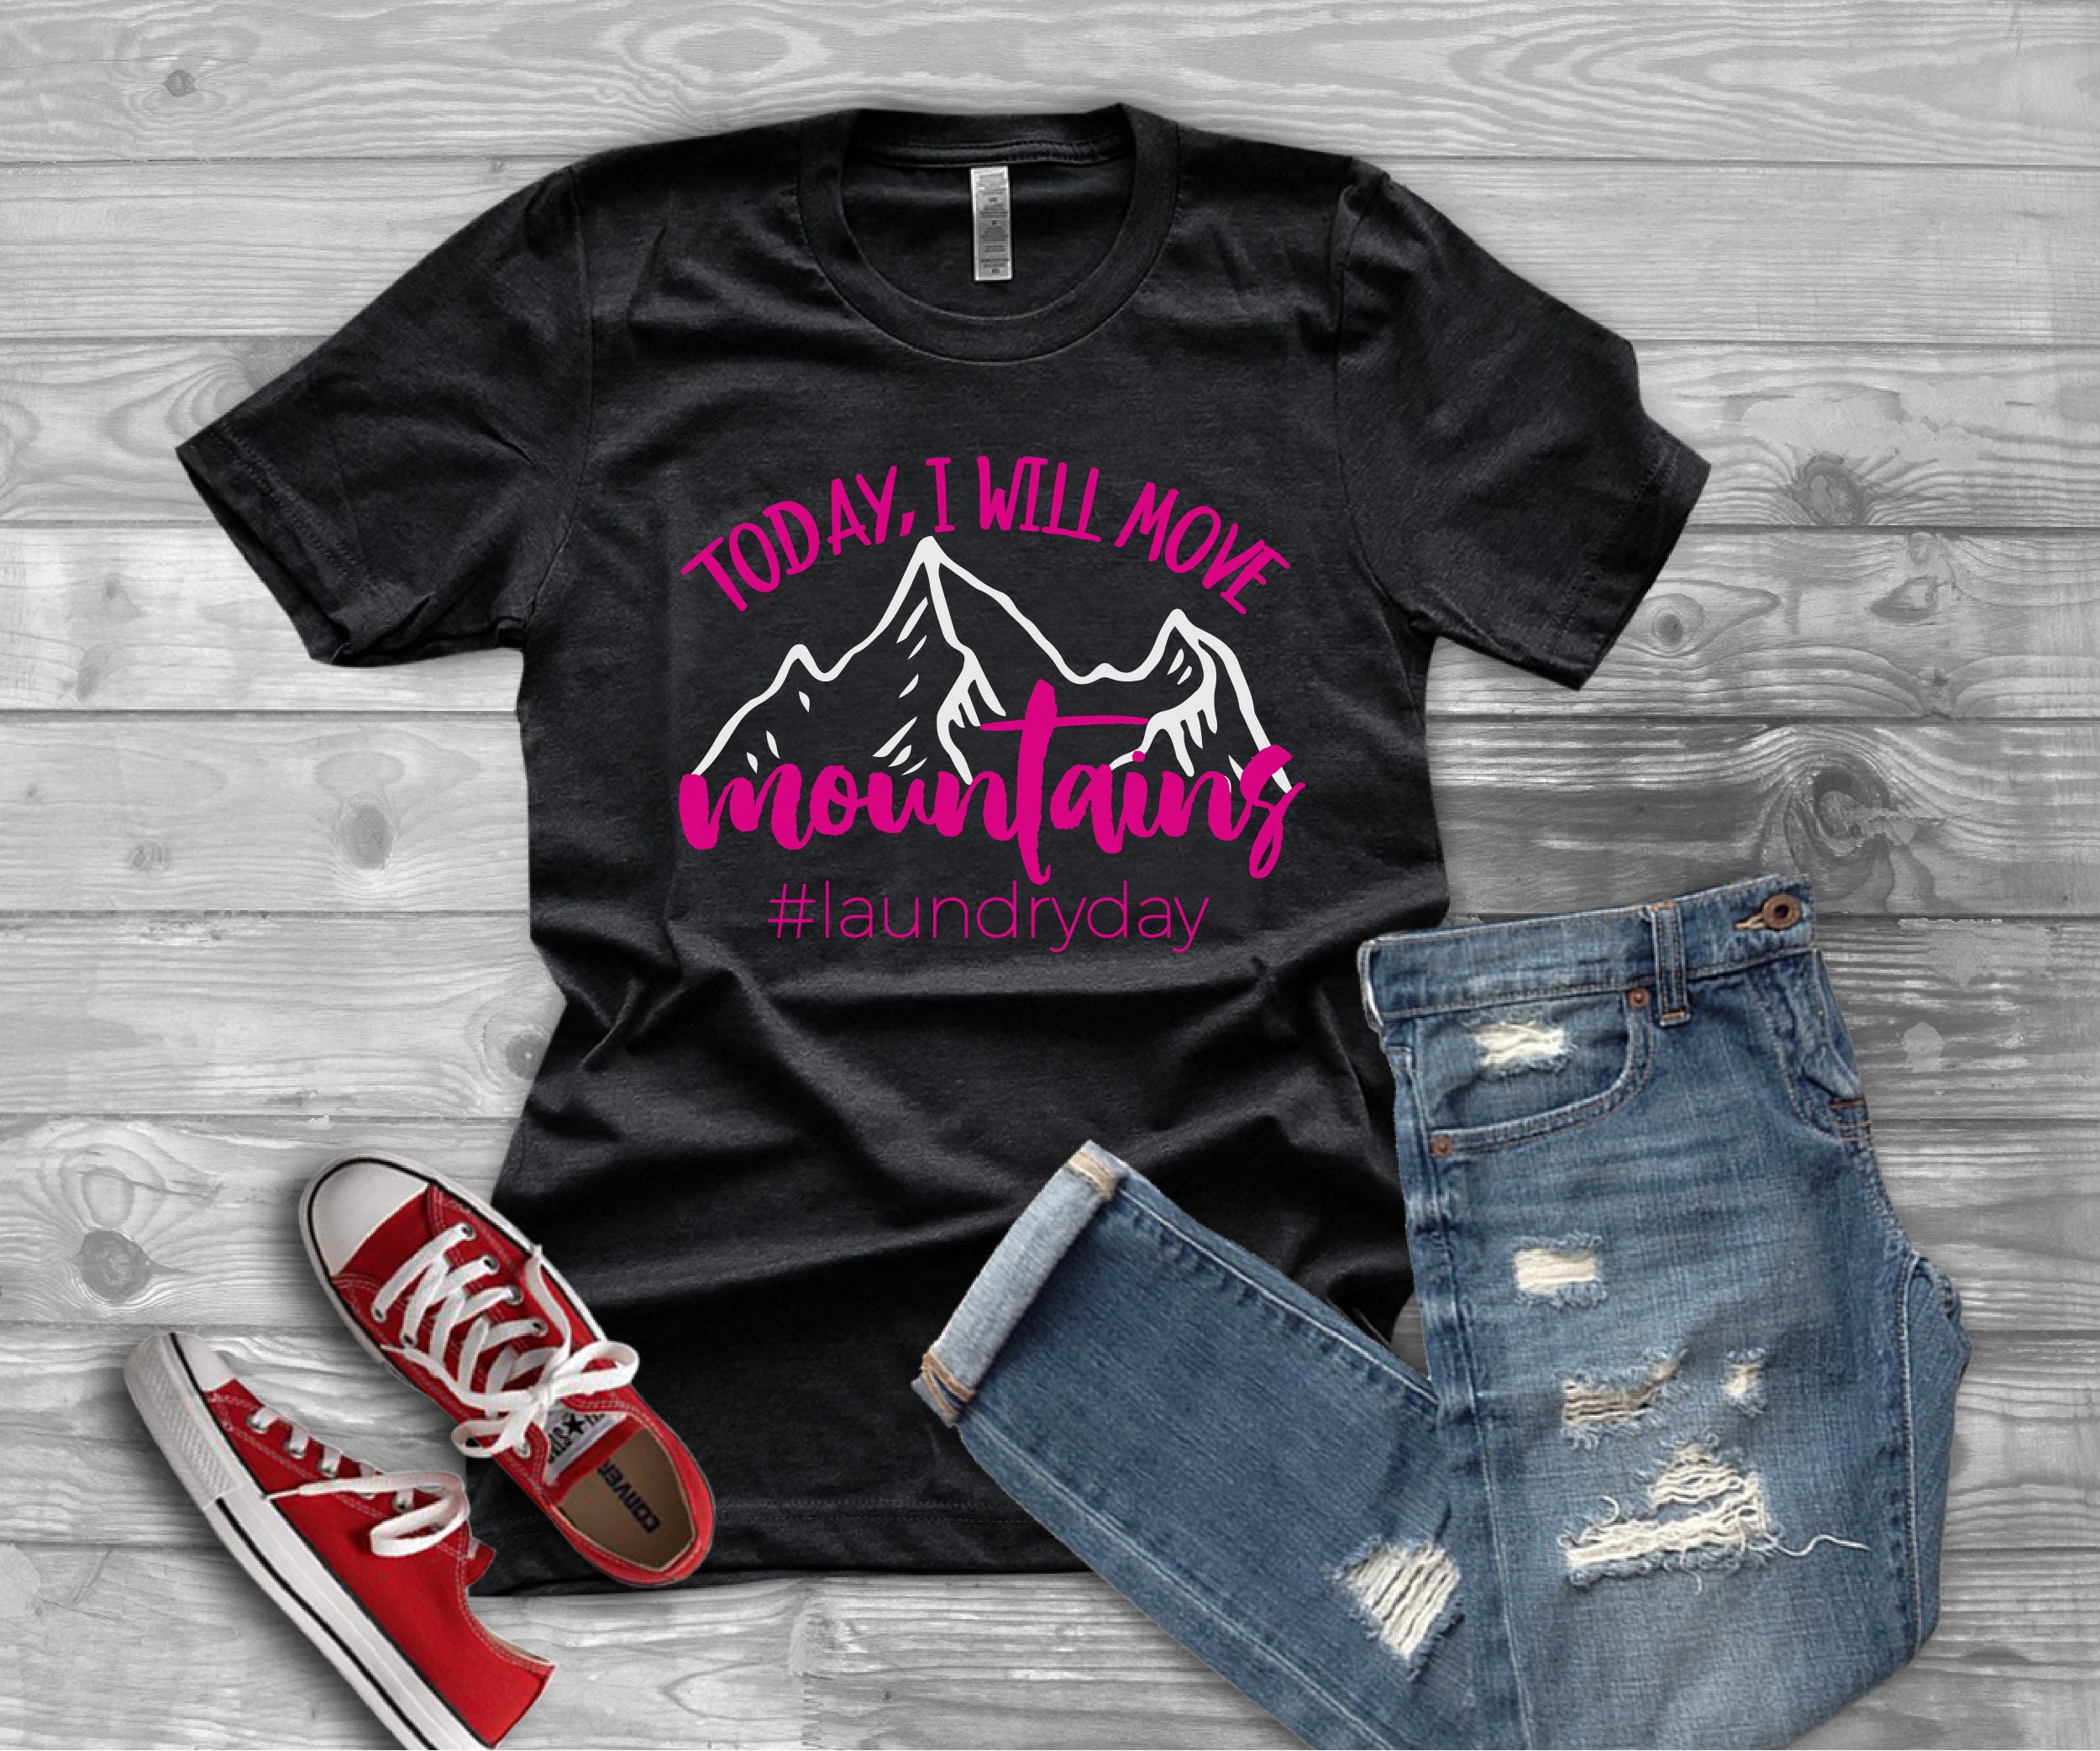 98aec04c2 I Will Move Mountains #Laundryday Graphic Tee